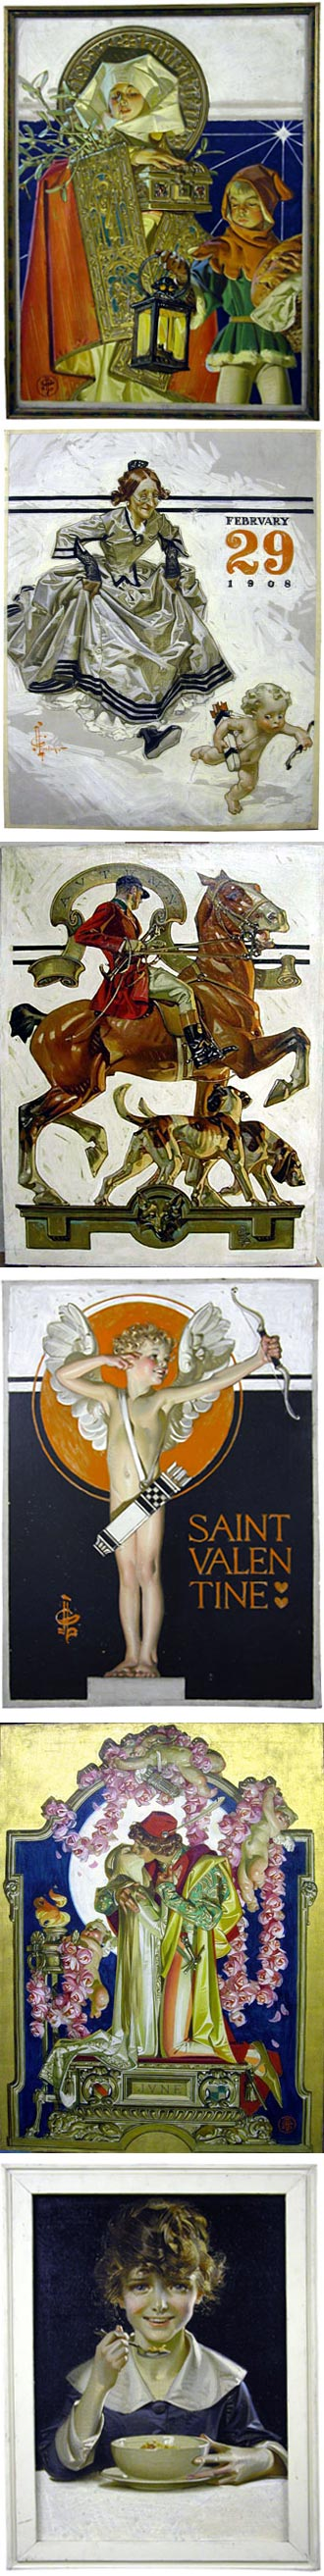 The Haggin Museum J.C. Leyendecker Collection